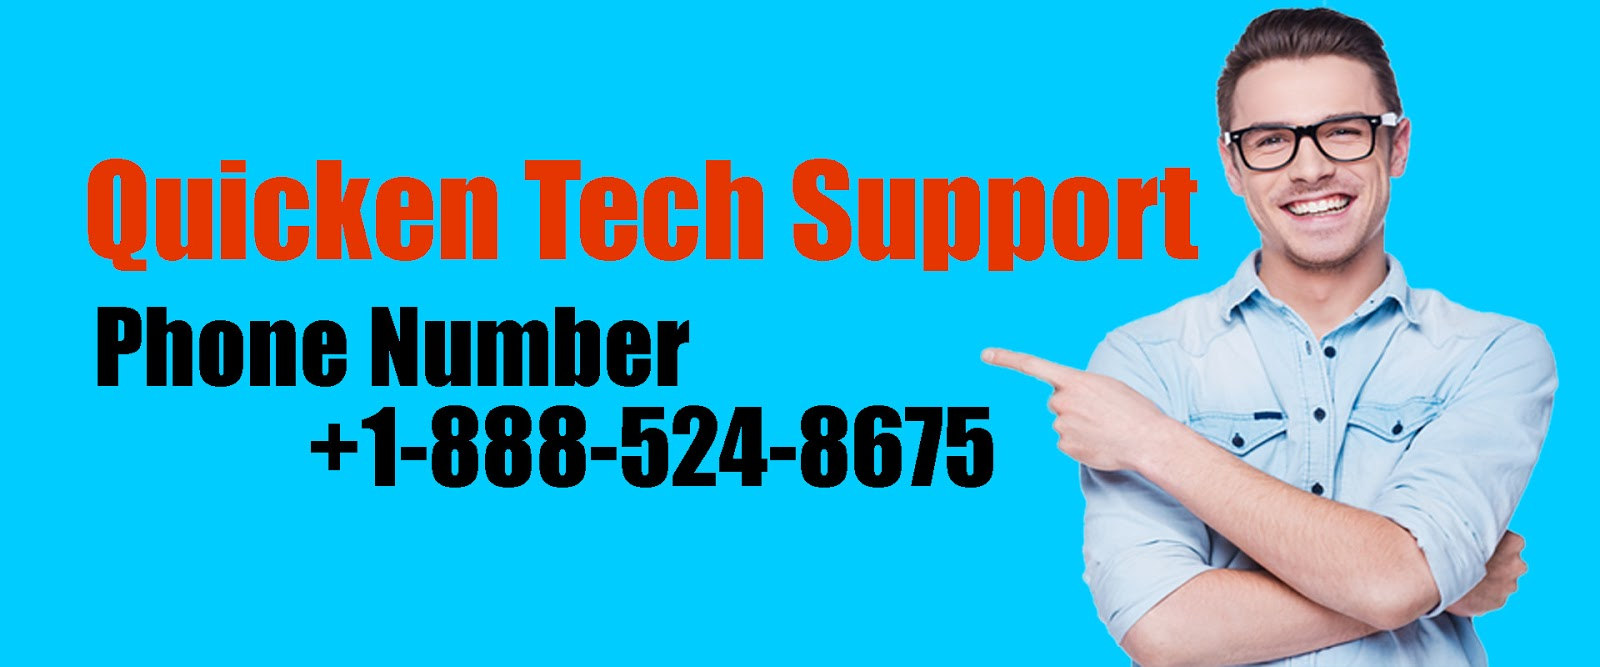 quicken tech support number 1888-524-8675